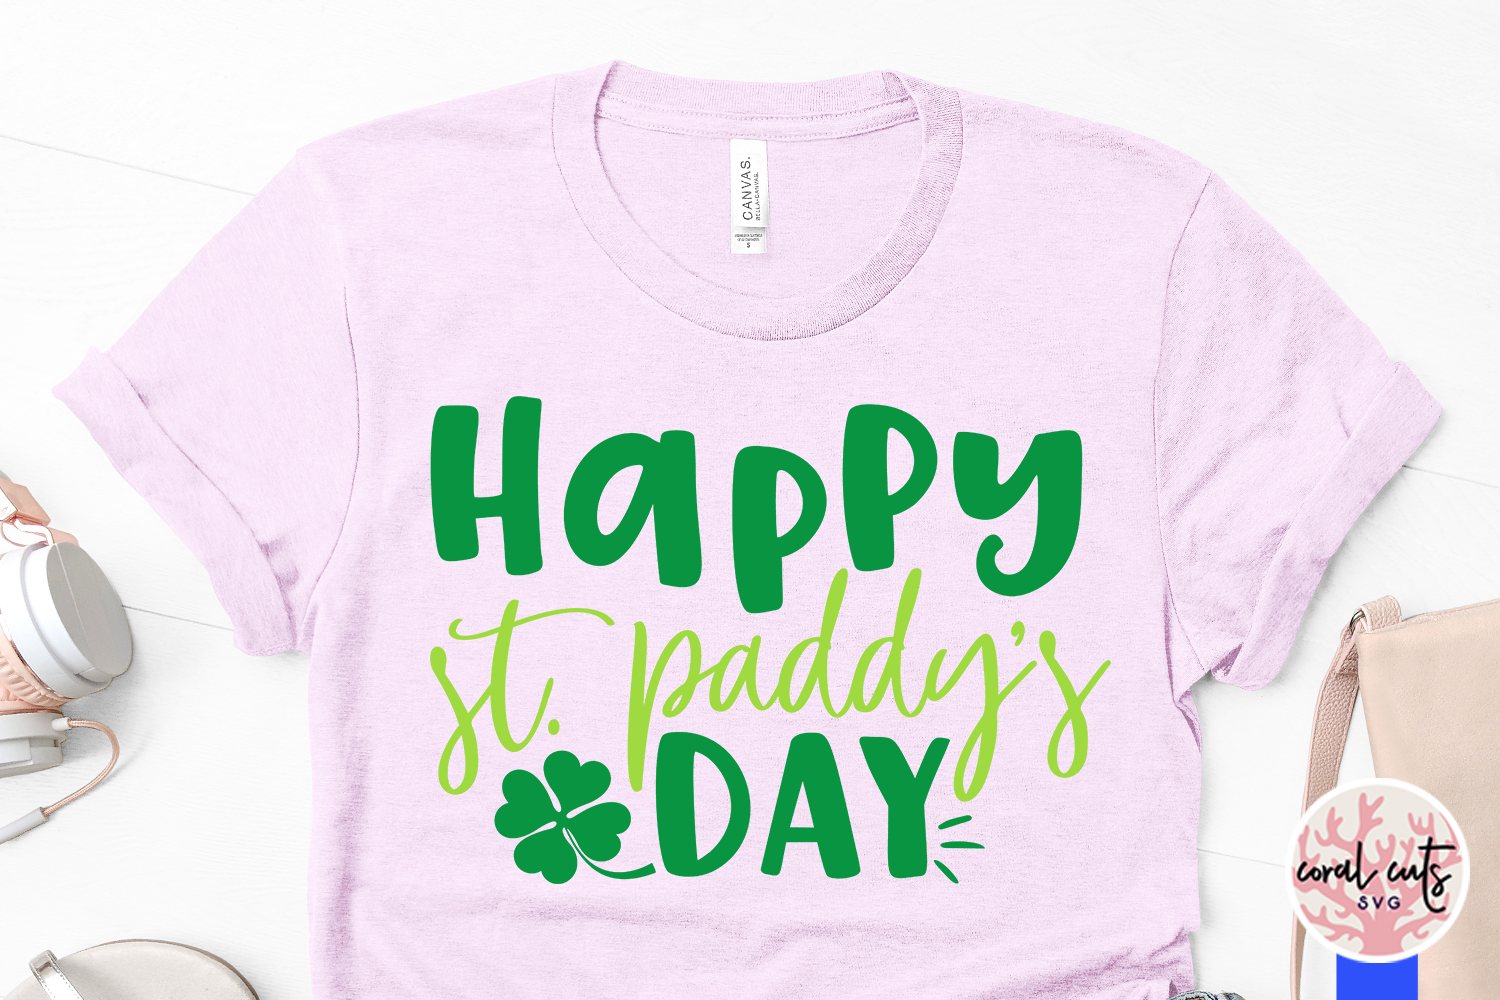 Happy st. patty's day - St. Patrick's Day SVG EPS DXF PNG example image 3